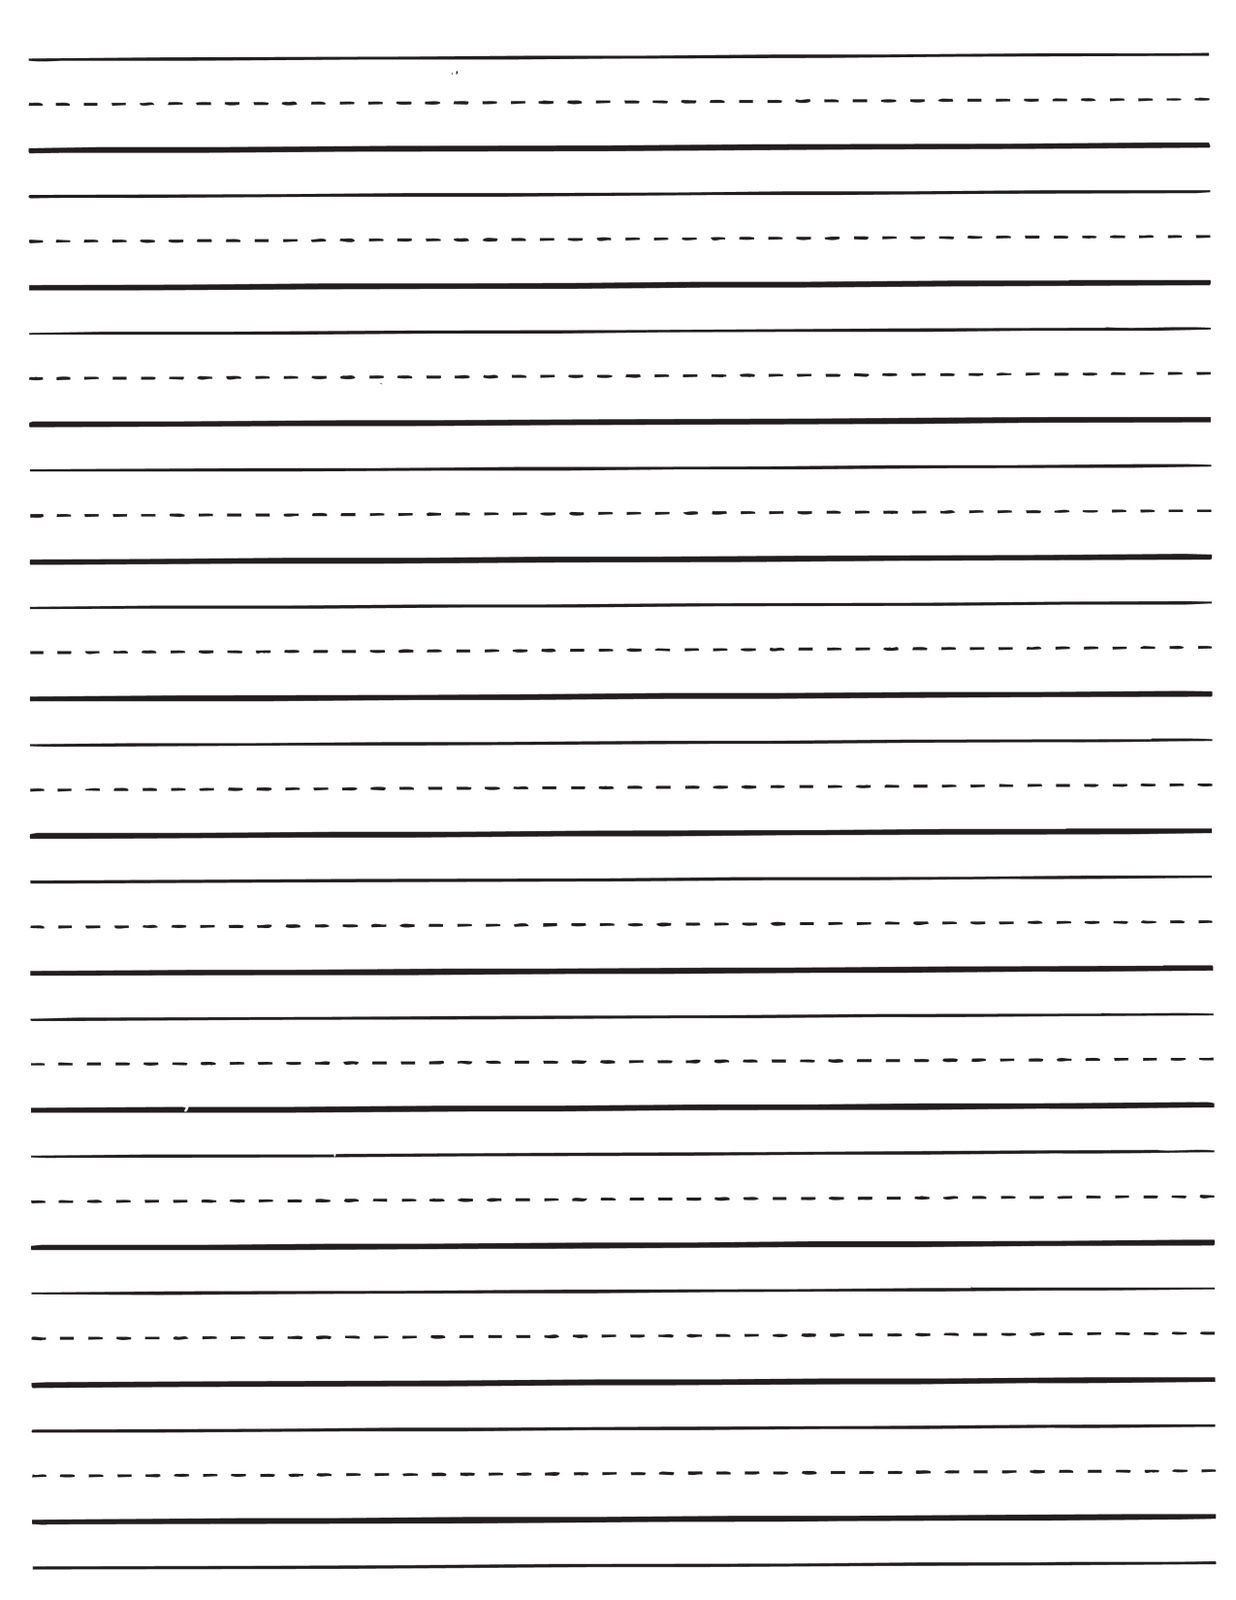 Superior Second Grade Ruled Paper | Lined Paper For You To Elementary Lined Paper Template